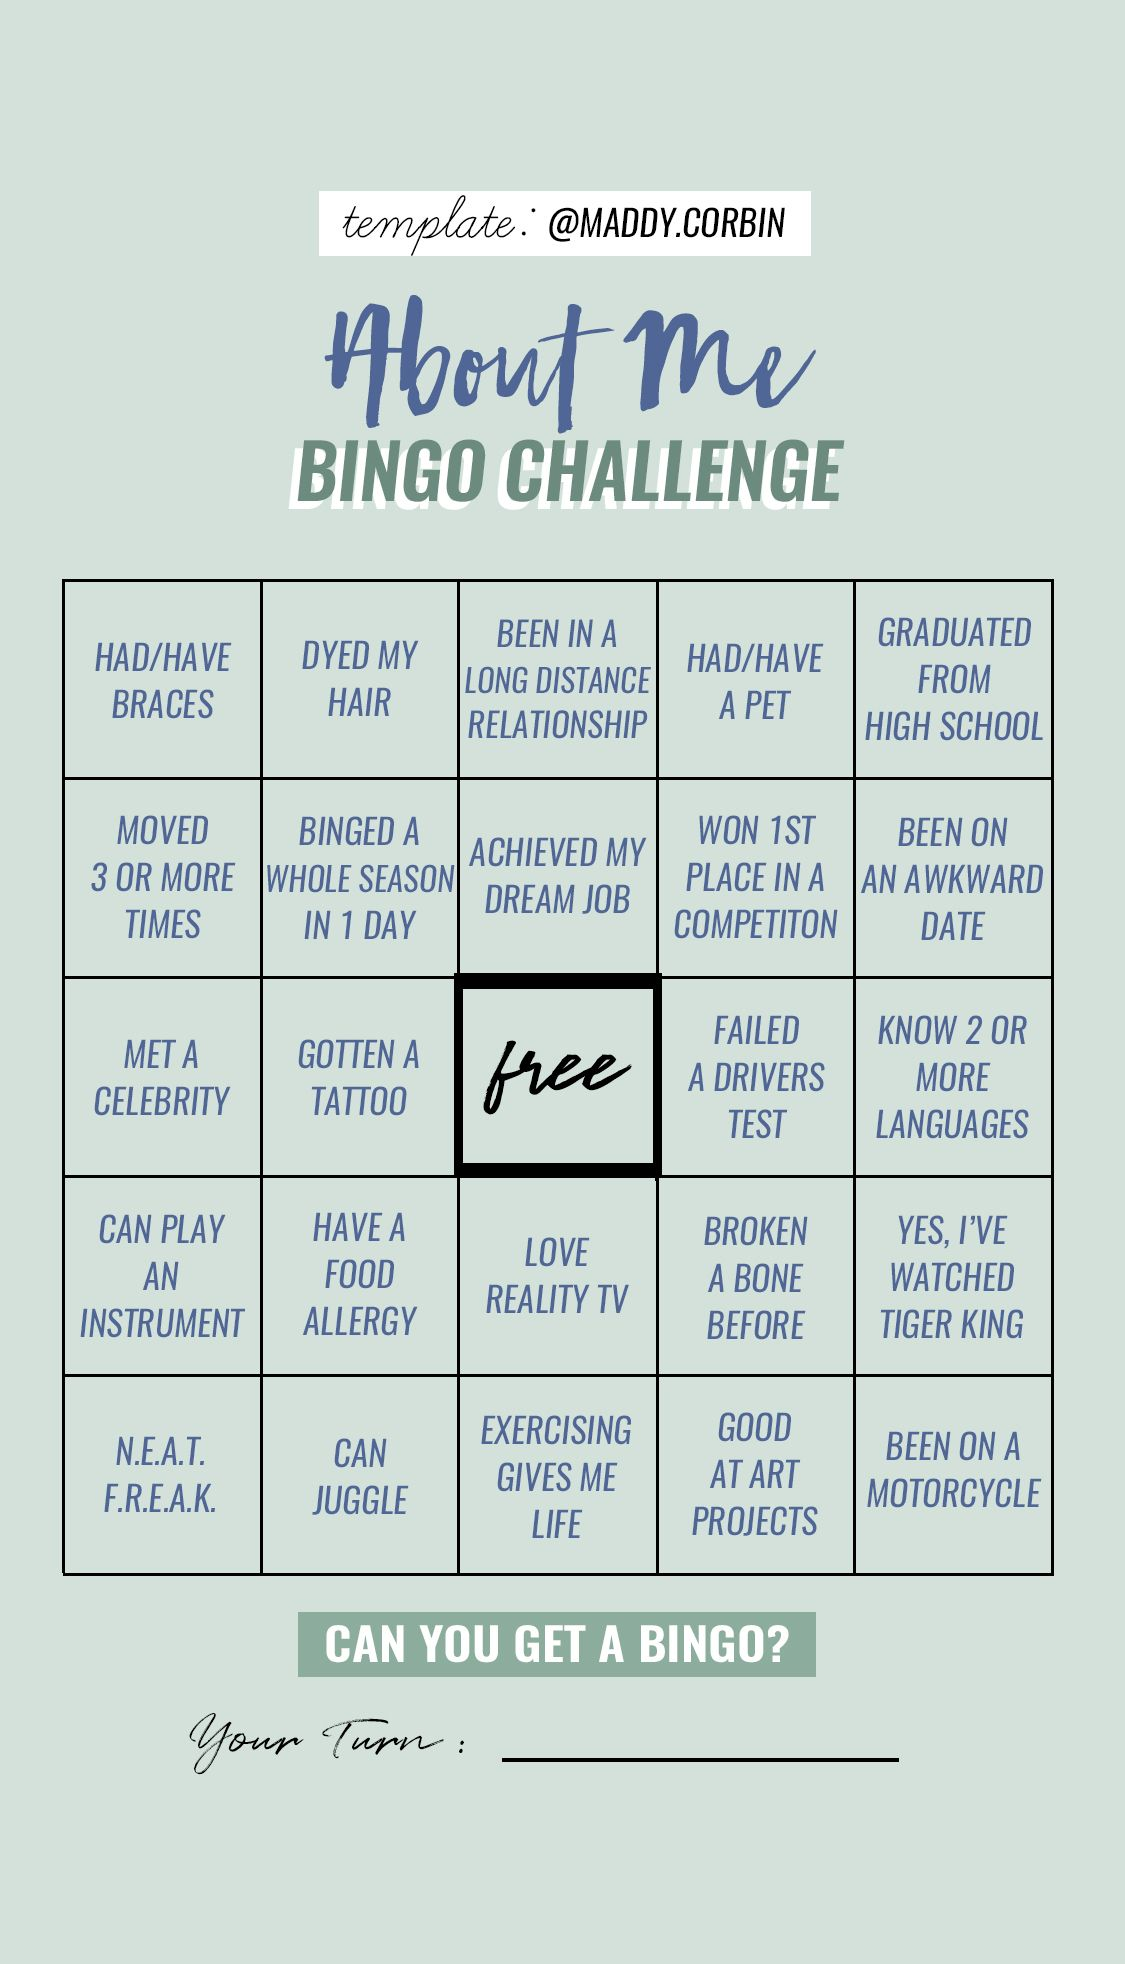 About Me Bingo Challenge Story Template